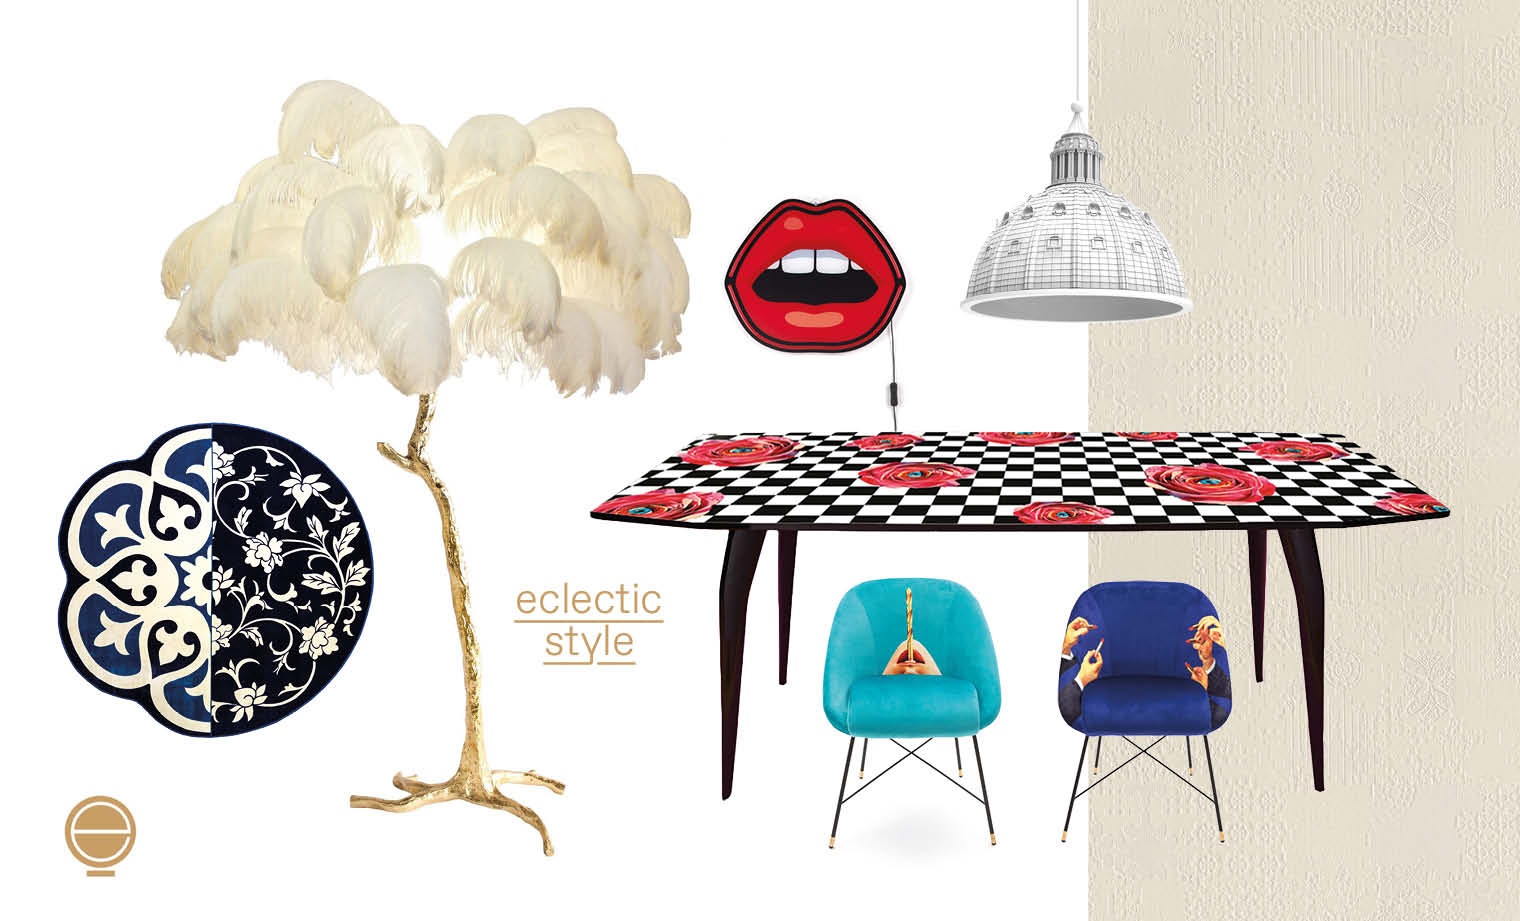 eclectic style moodboard and composition of high end furniture in Singapore